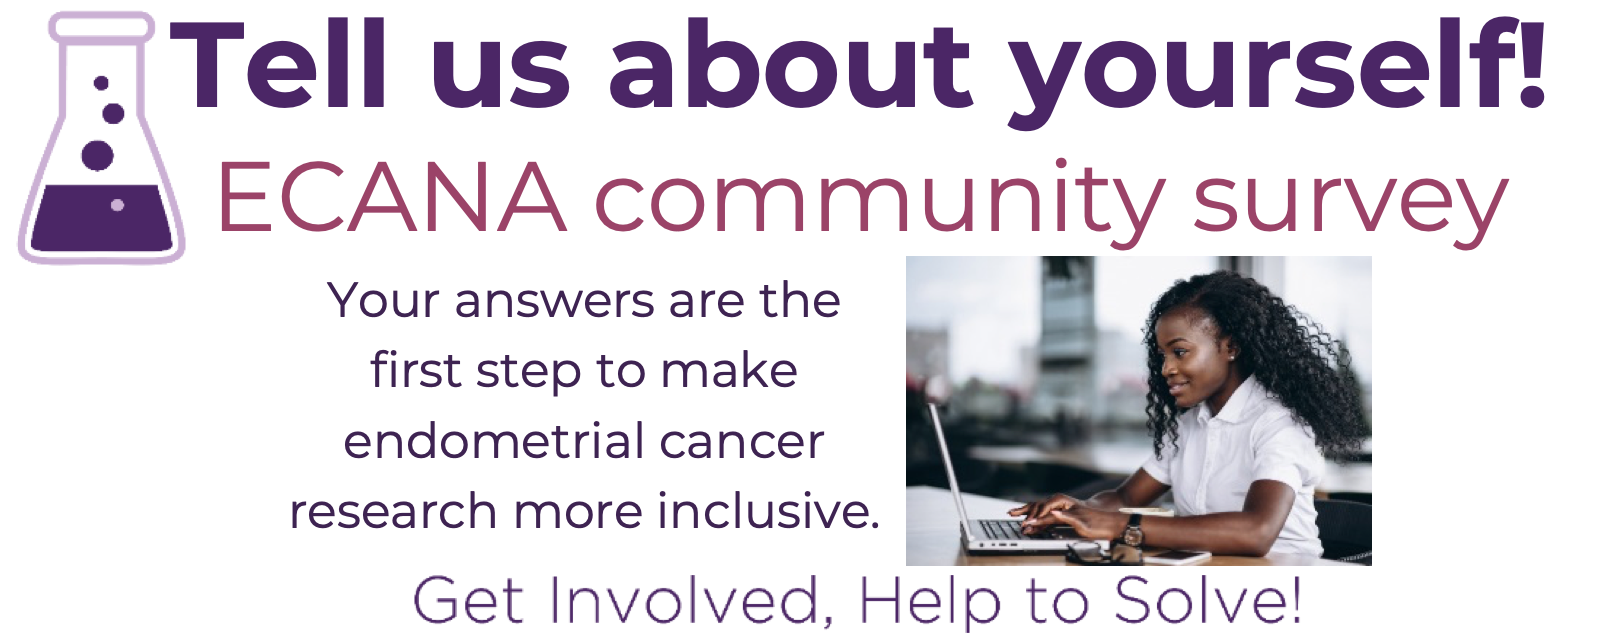 Tell us about yourself: click here to take the ECANA community survey